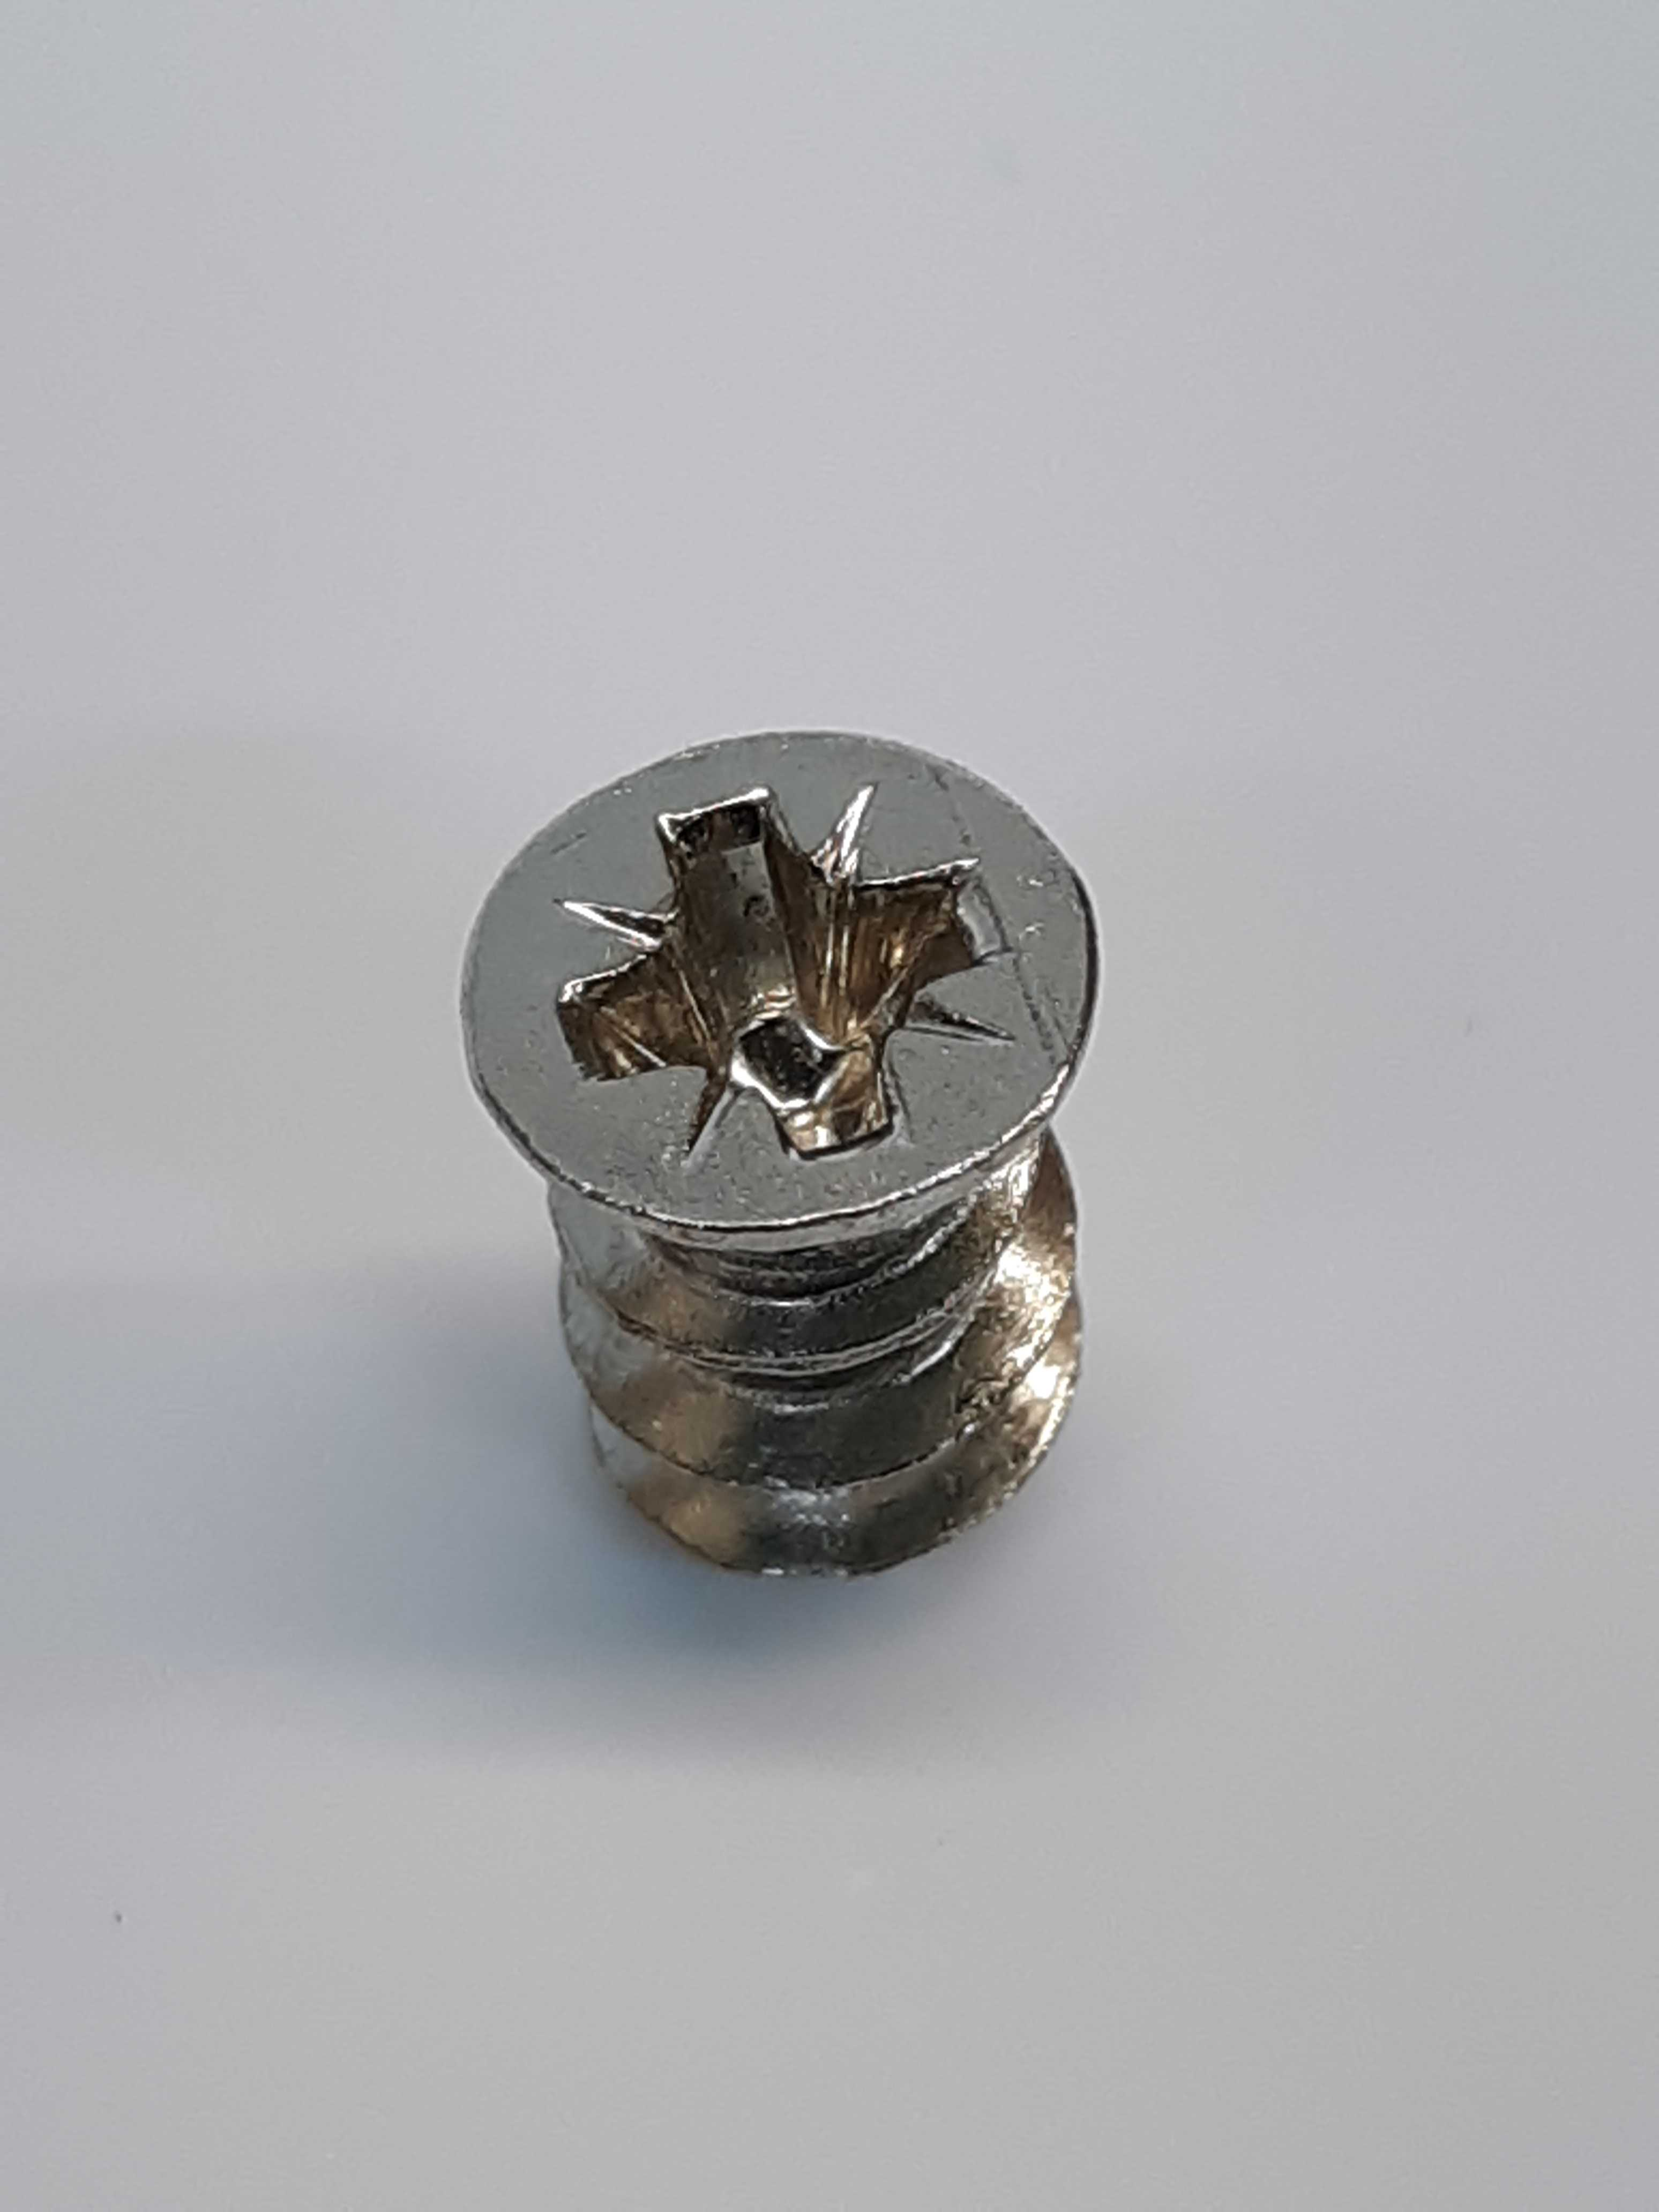 The Plant Manager 013.14.718 Screw 5 mm/10.5 mm Nickel Plated AS IS